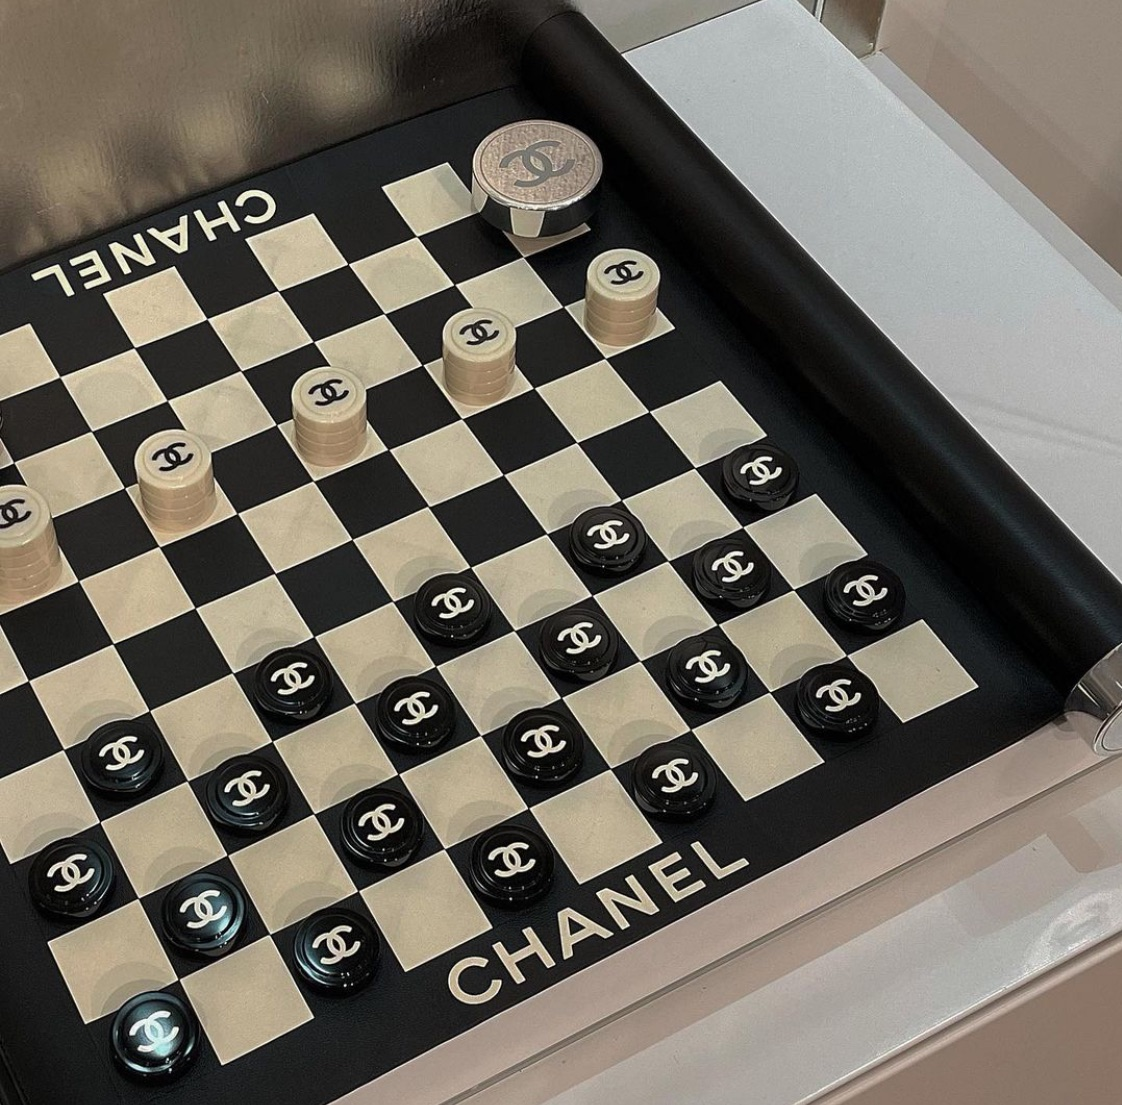 aesthetic, chanel, and chess image